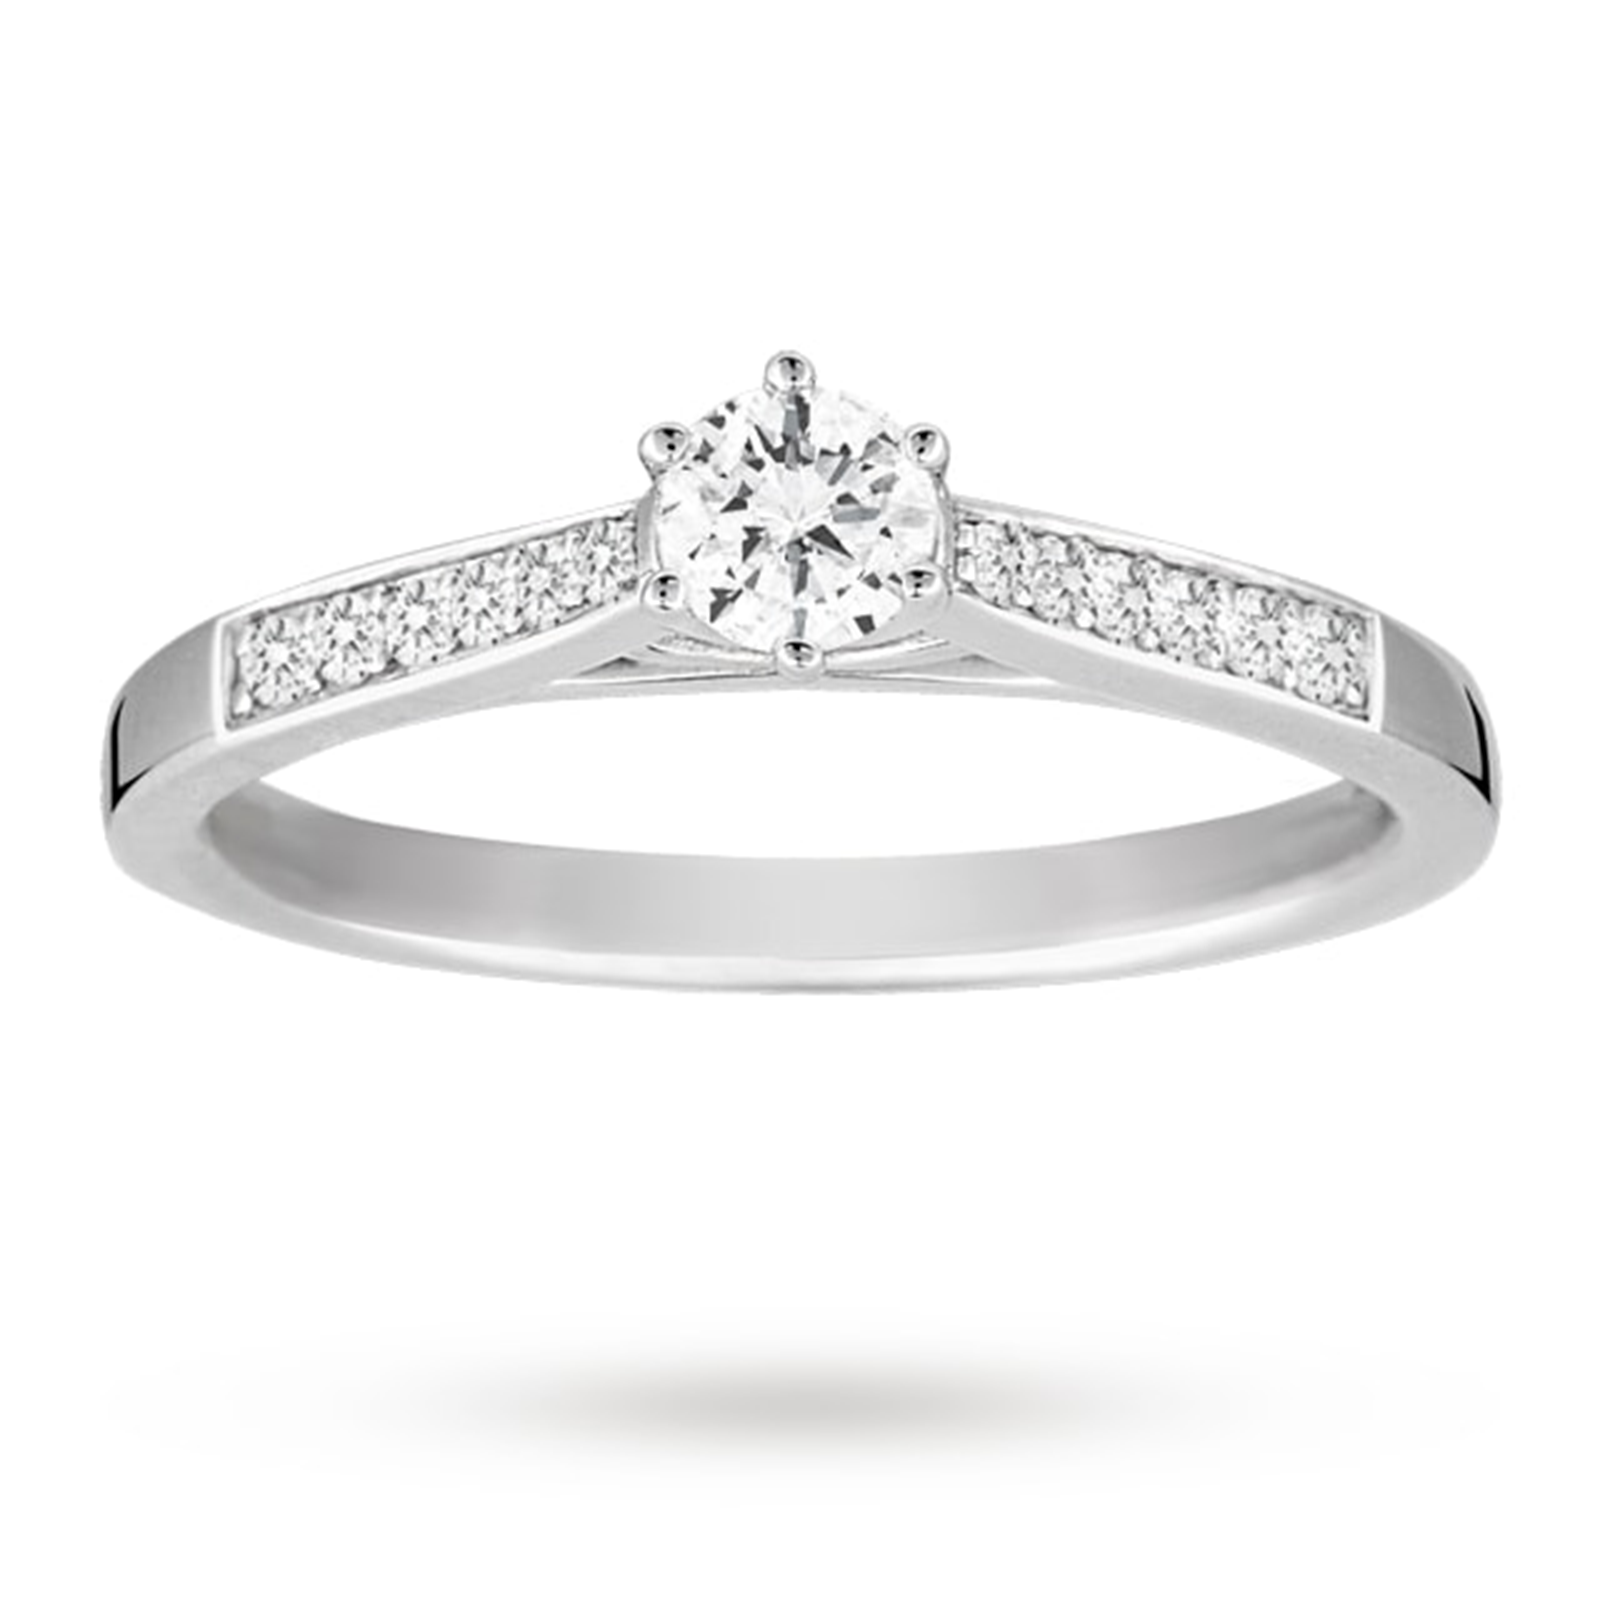 Platinum Brilliant Cut 0.33 Carat 88 Facet Diamond Ring